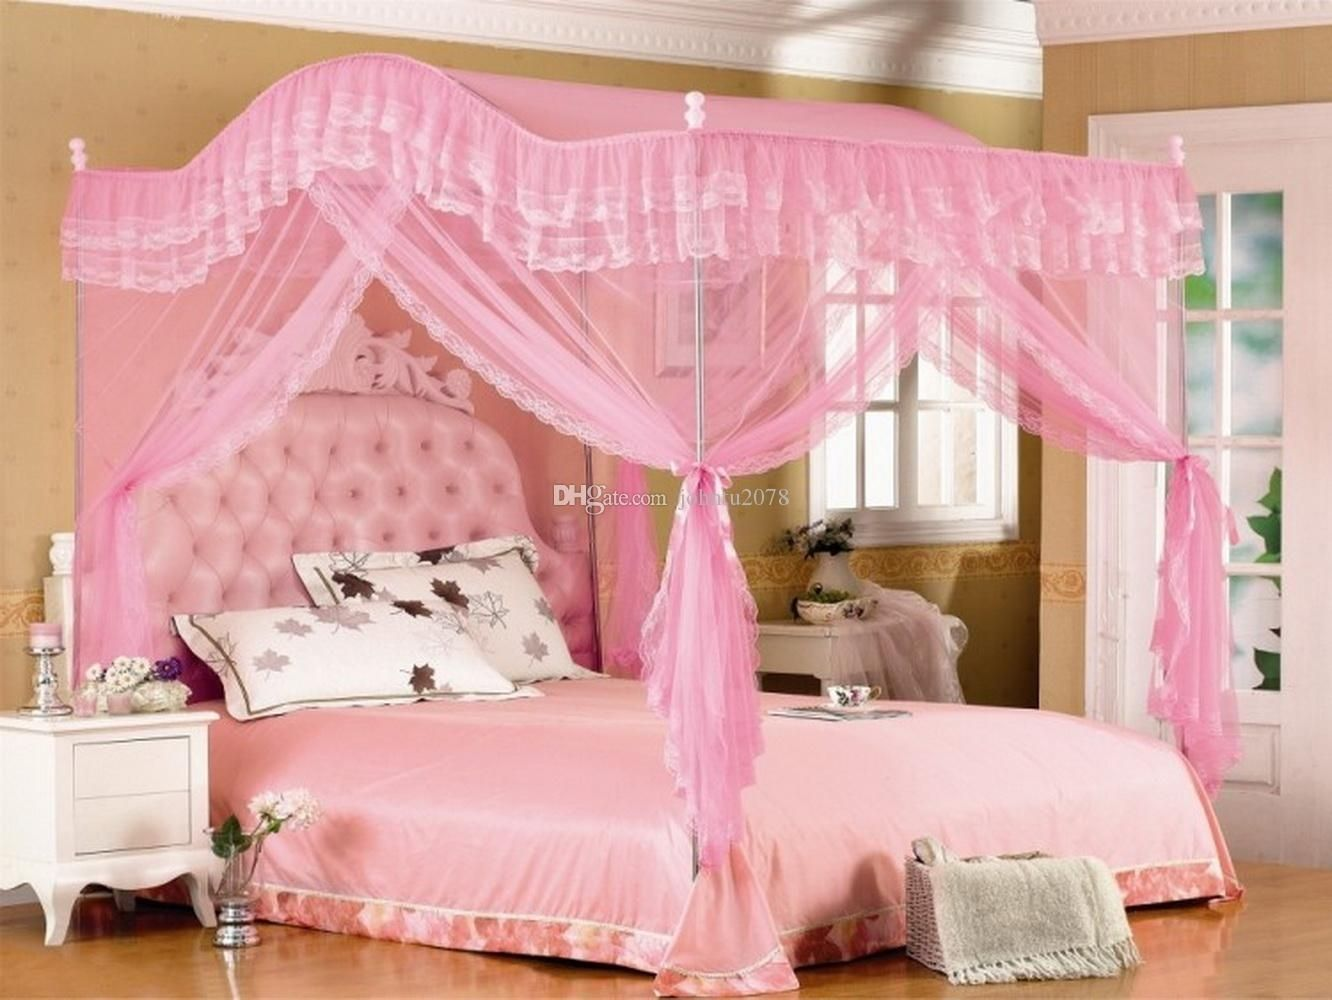 Princess Canopy Bed For Your Daughters Room Girls Bed Canopy